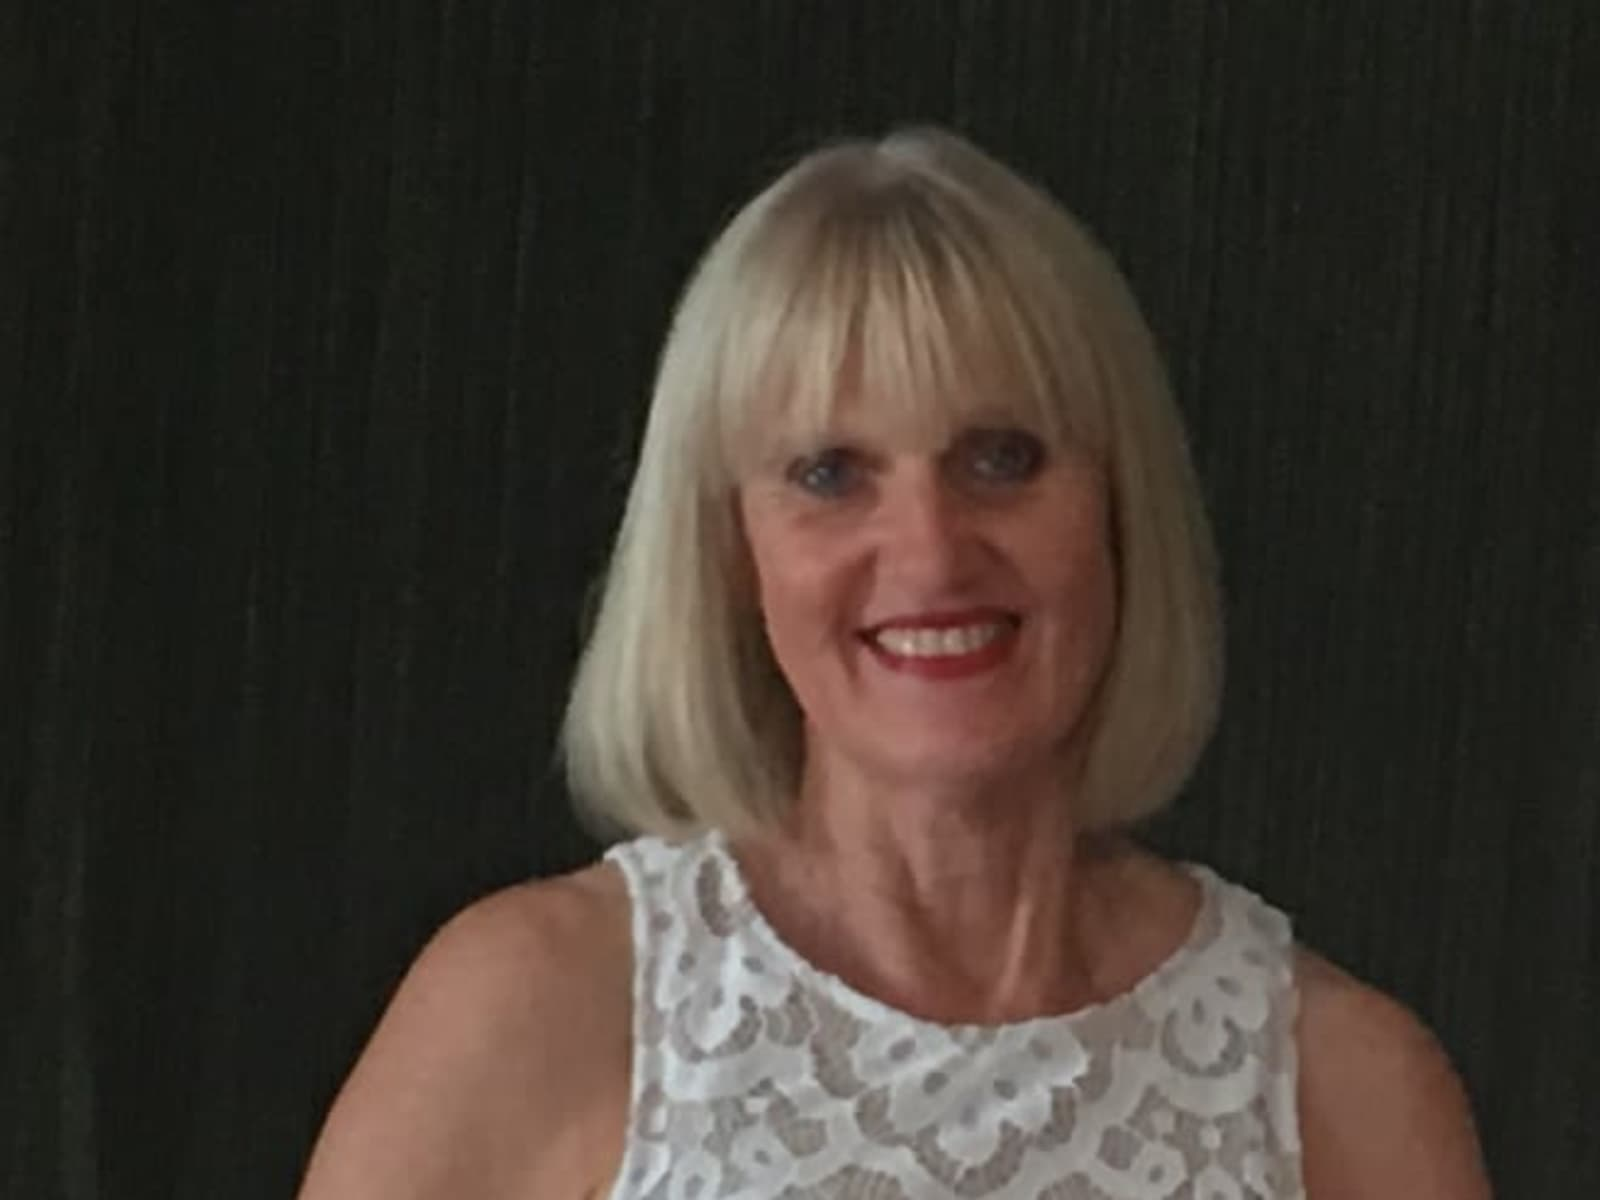 Susan from Brisbane, Queensland, Australia